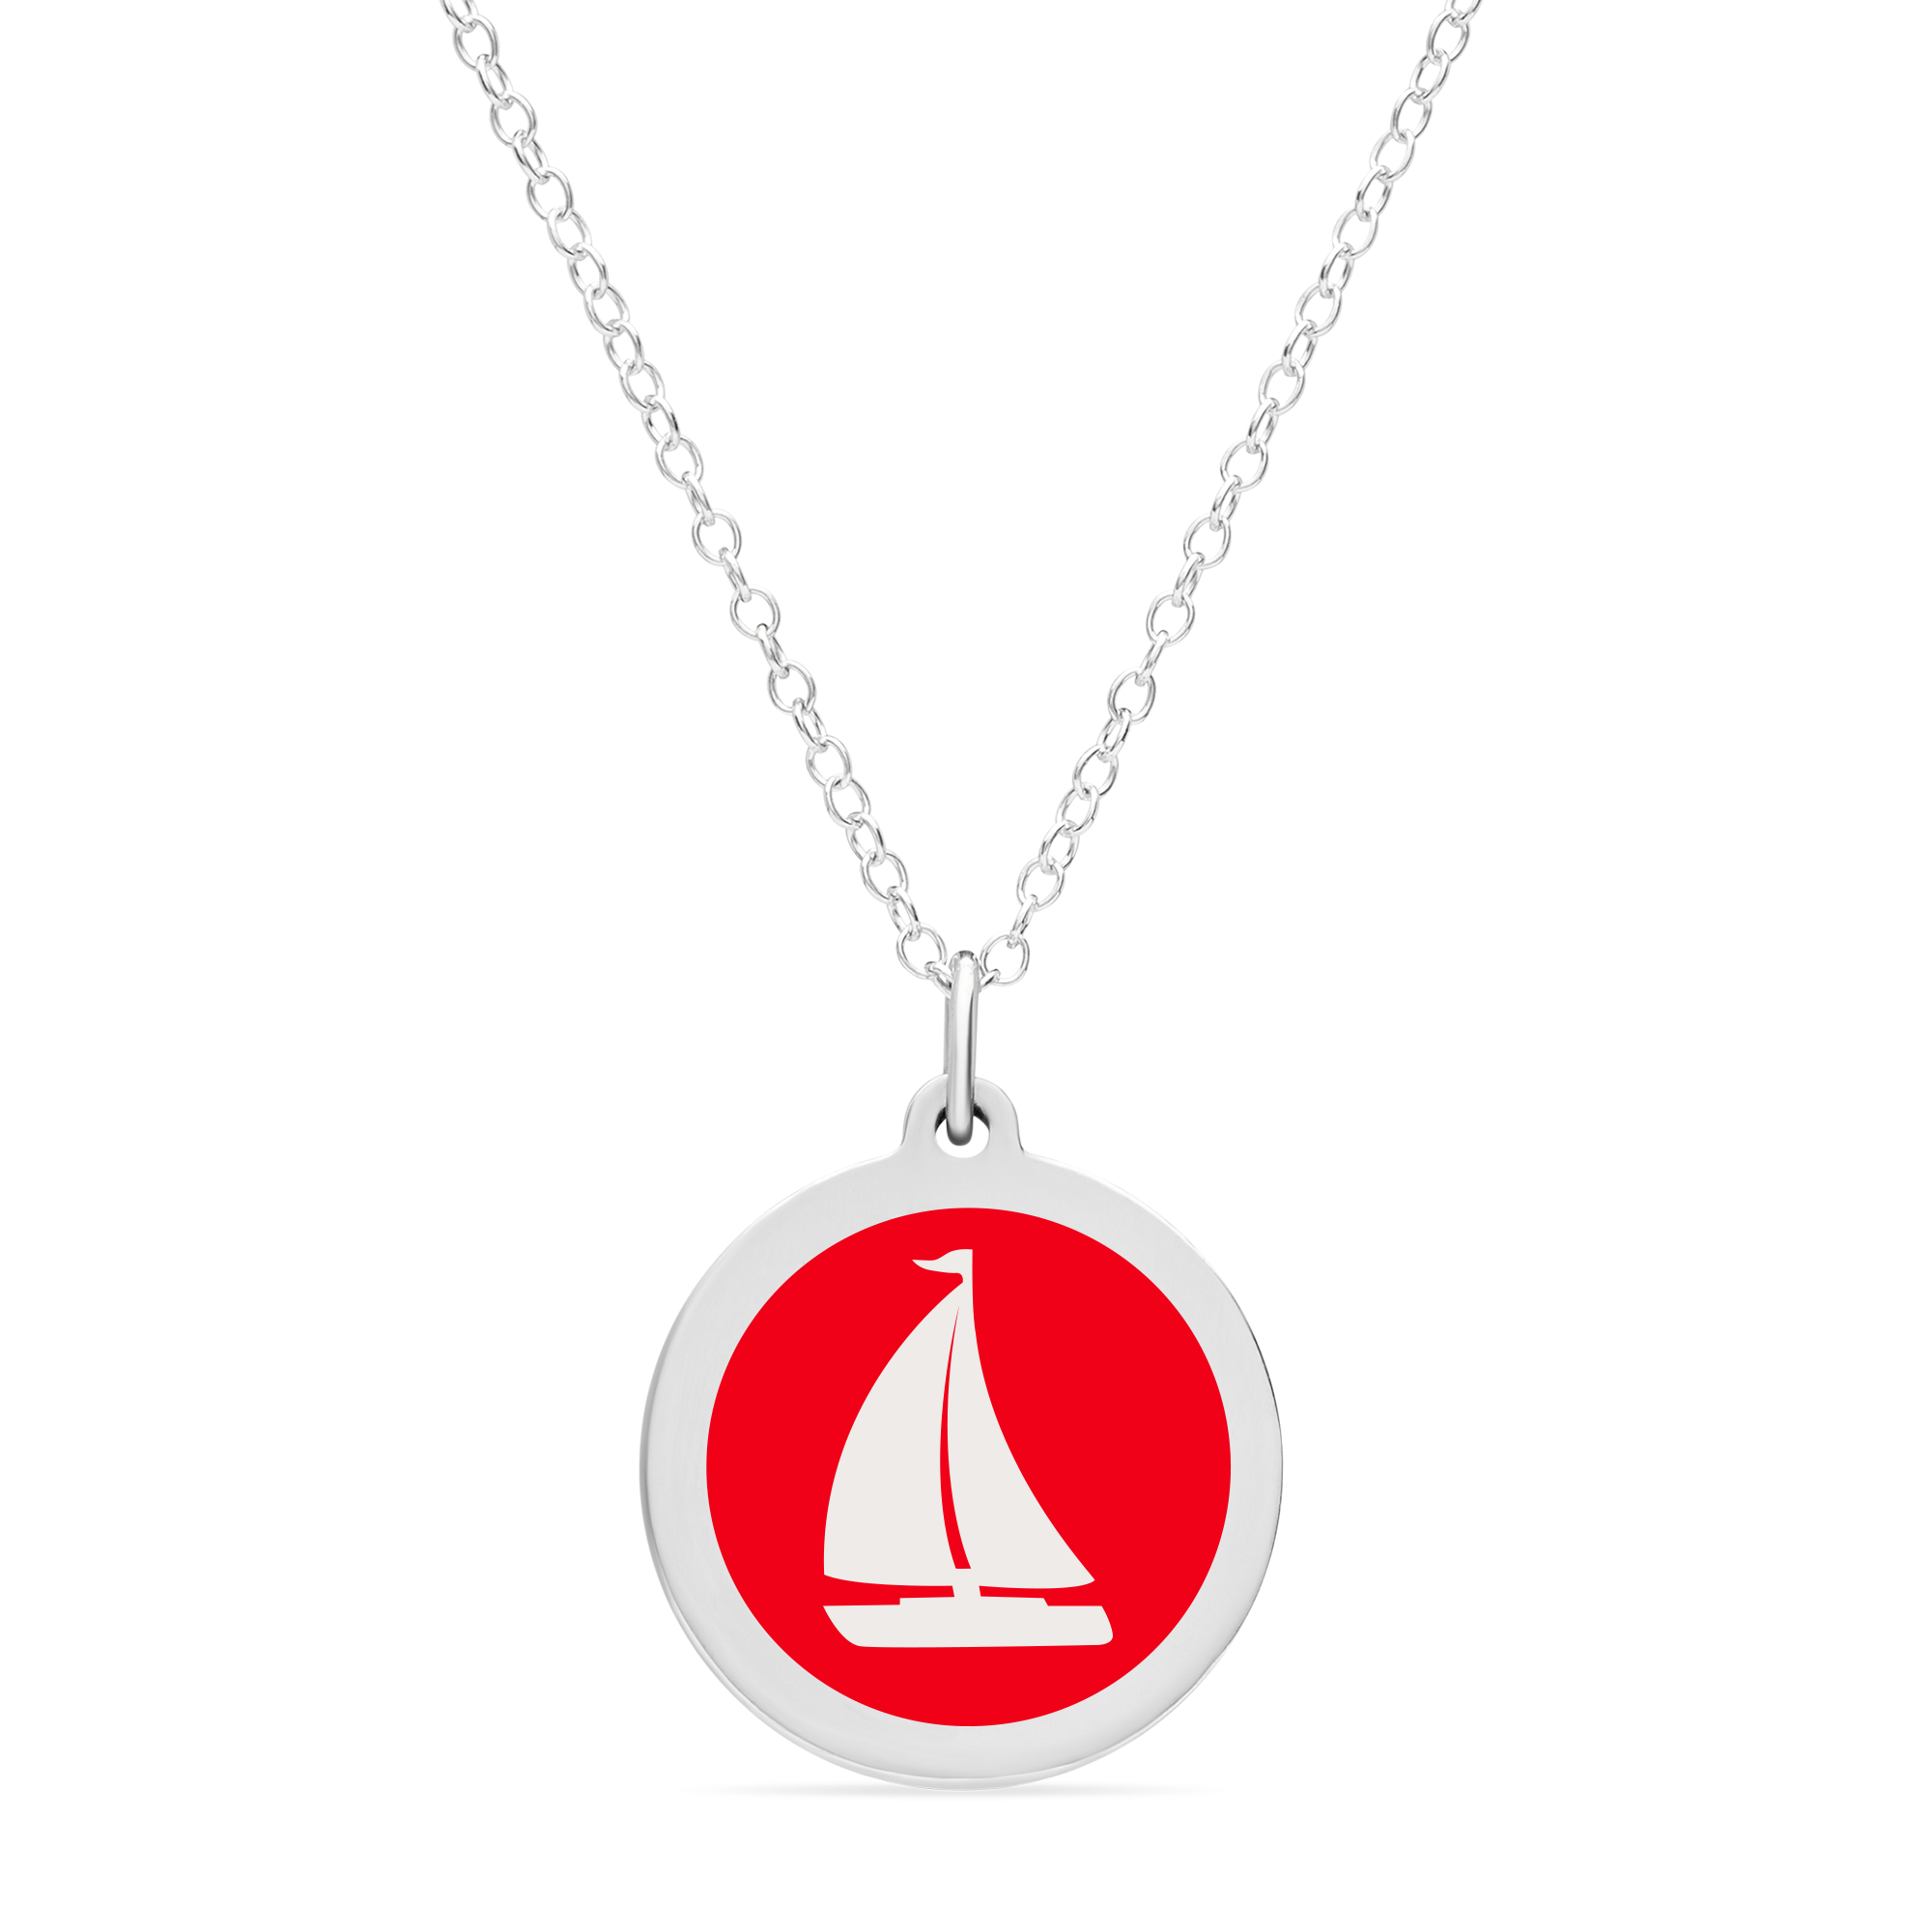 ORIGINAL SAILBOAT CHARM sterling silver with rhodium plate